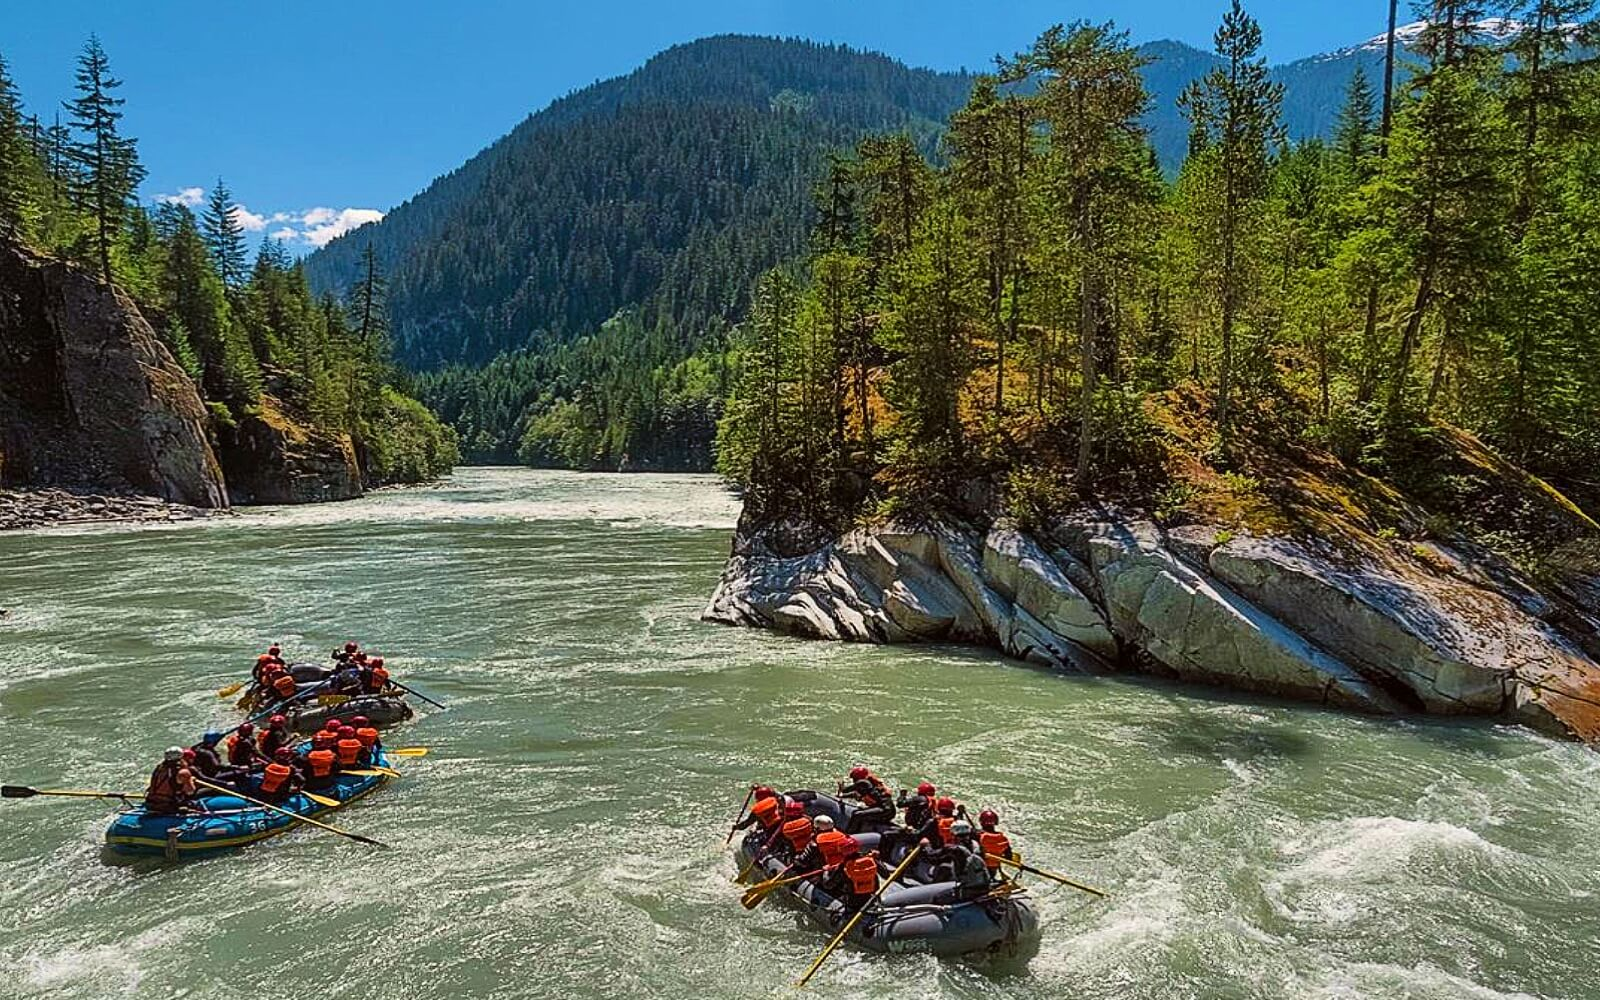 Whitewater rafting tours on the Squamish-Elaho River, Whistler